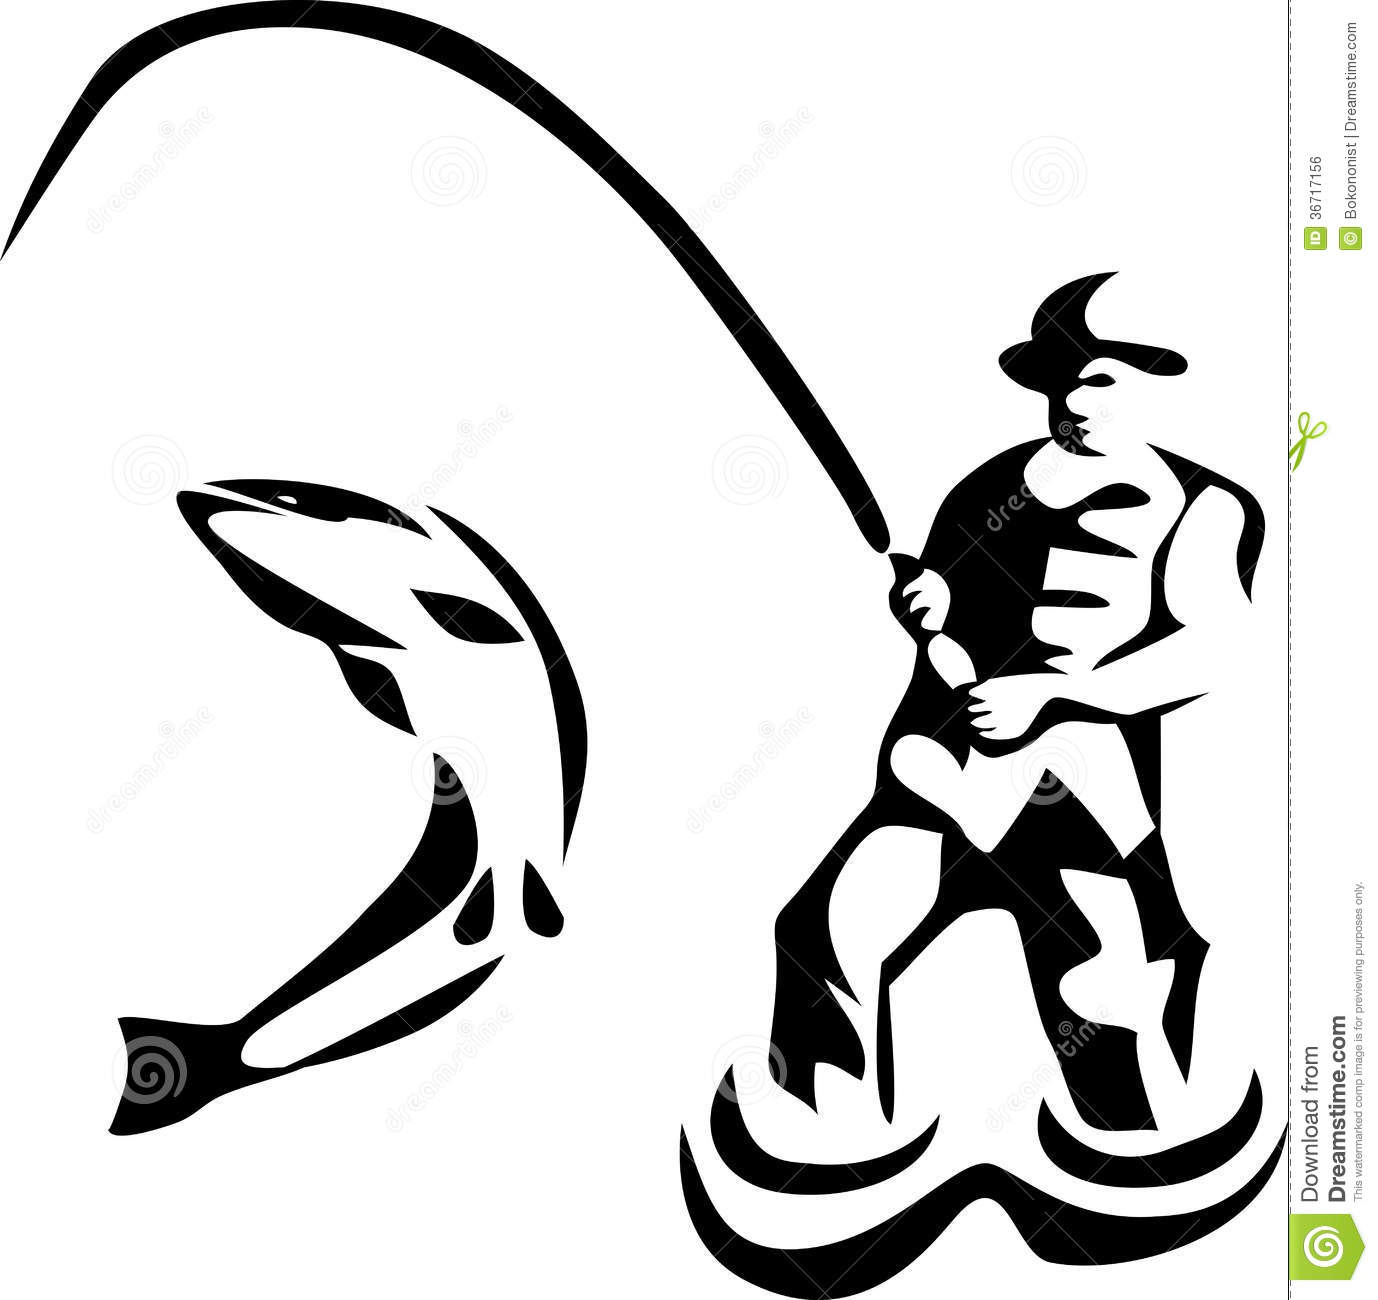 1378x1300 Fly Fishing Images Clipart Fly Fisherman Silhouette Vector